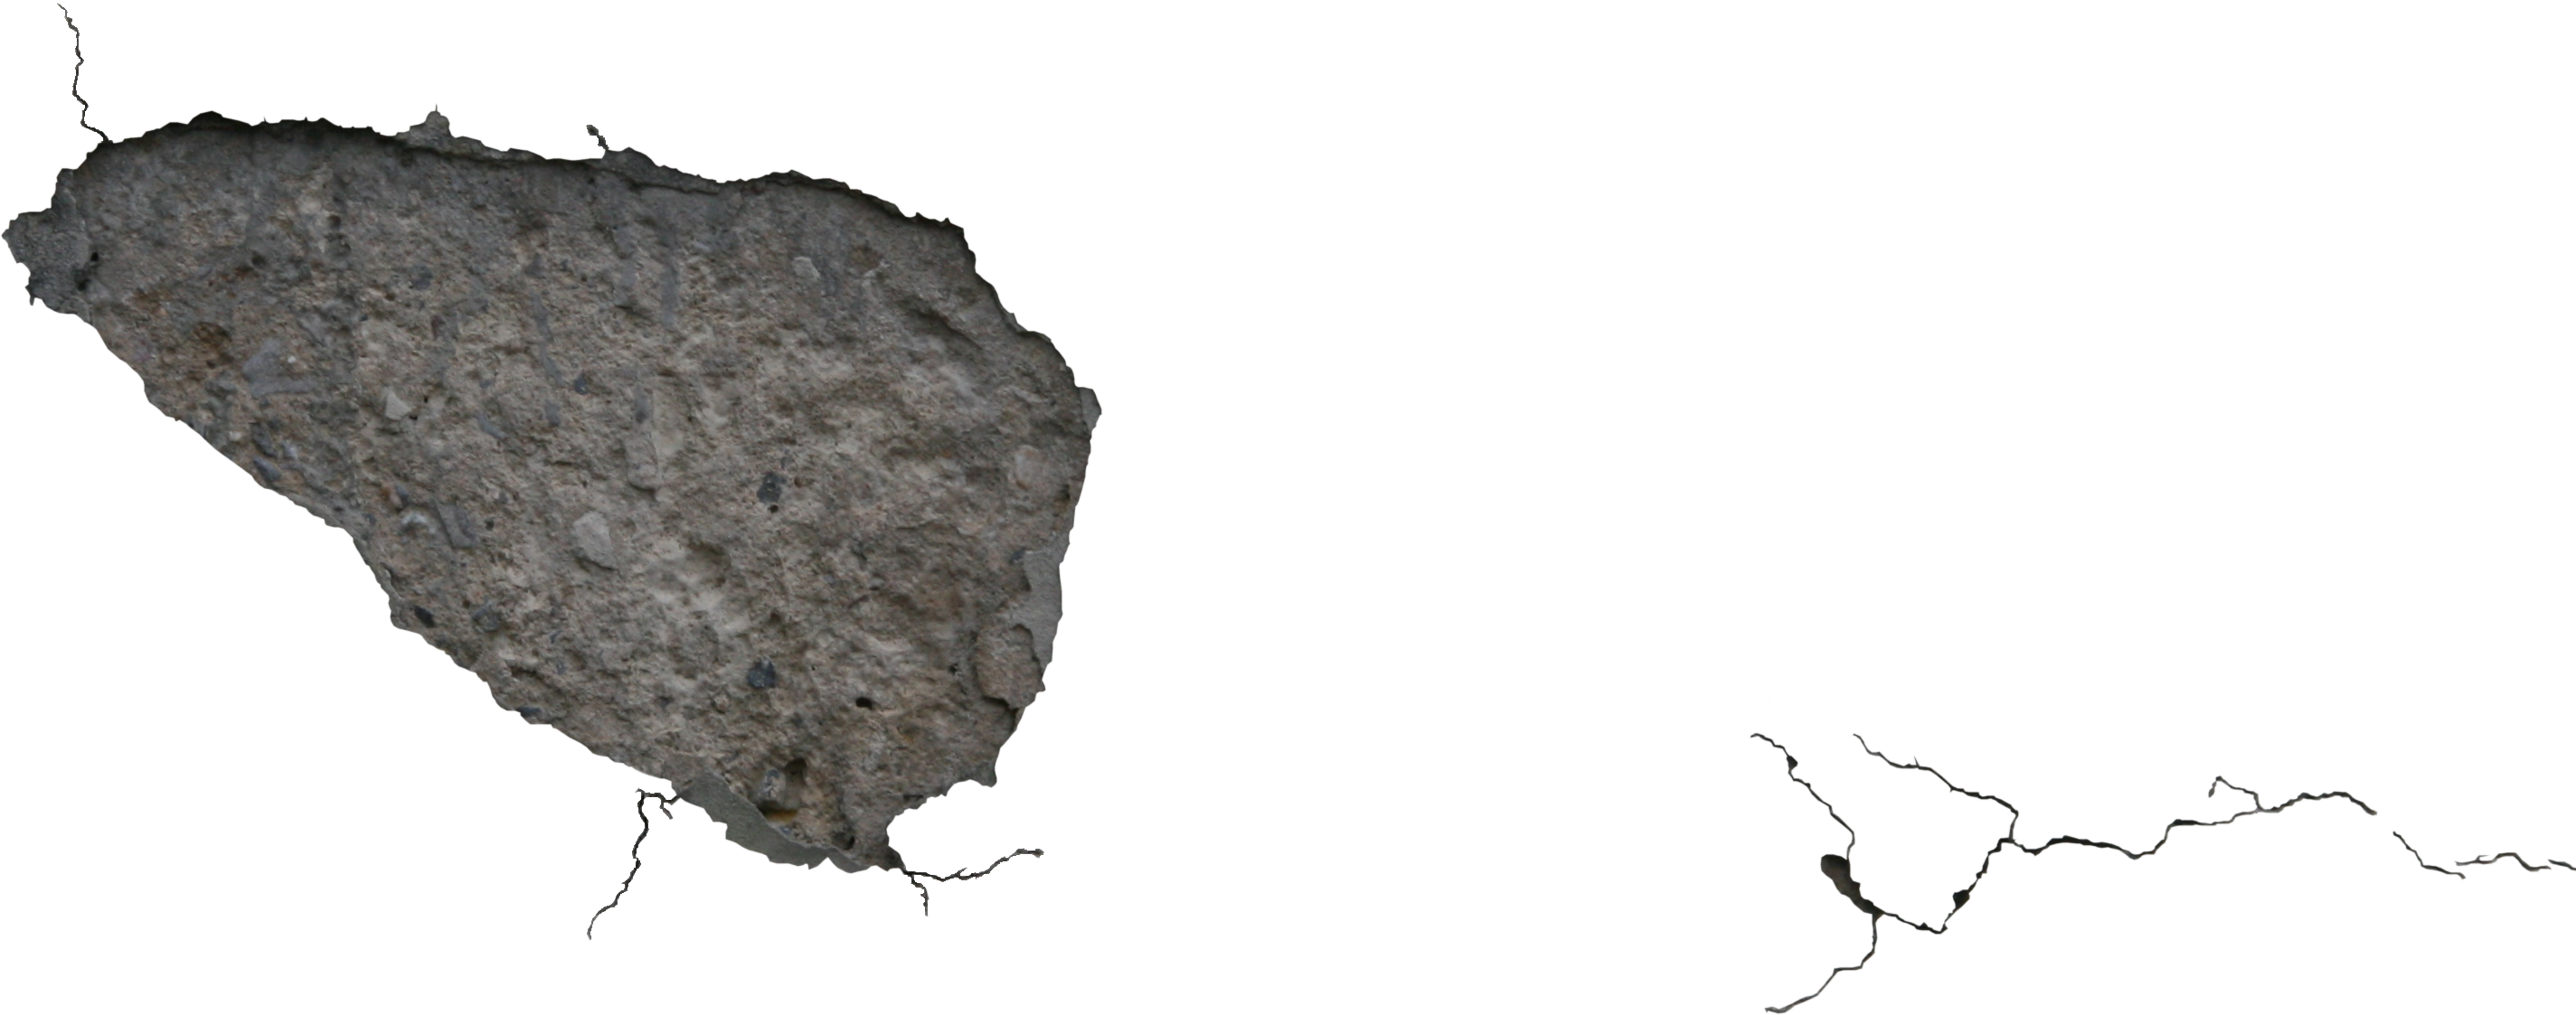 Concrete crack png. High quality cracked stucco